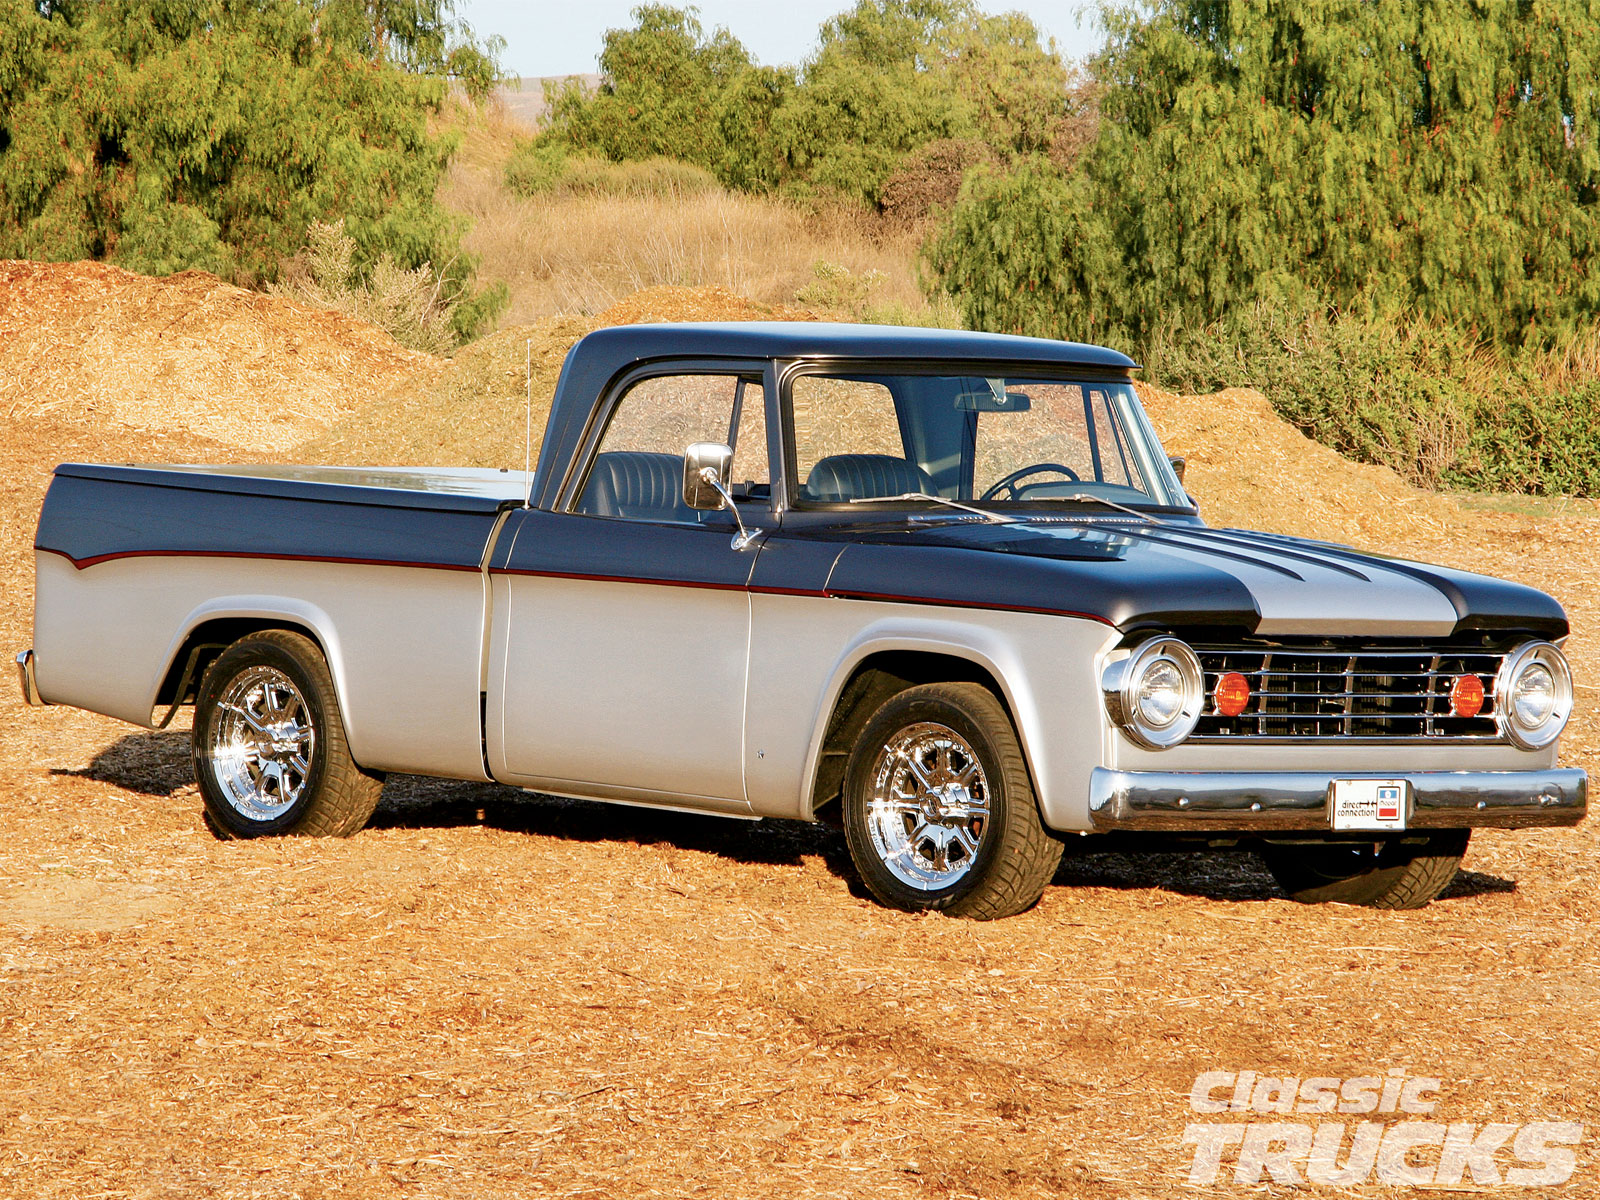 hight resolution of 1005clt 02 o 1967 dodge d100 pickup truck two tone paint job